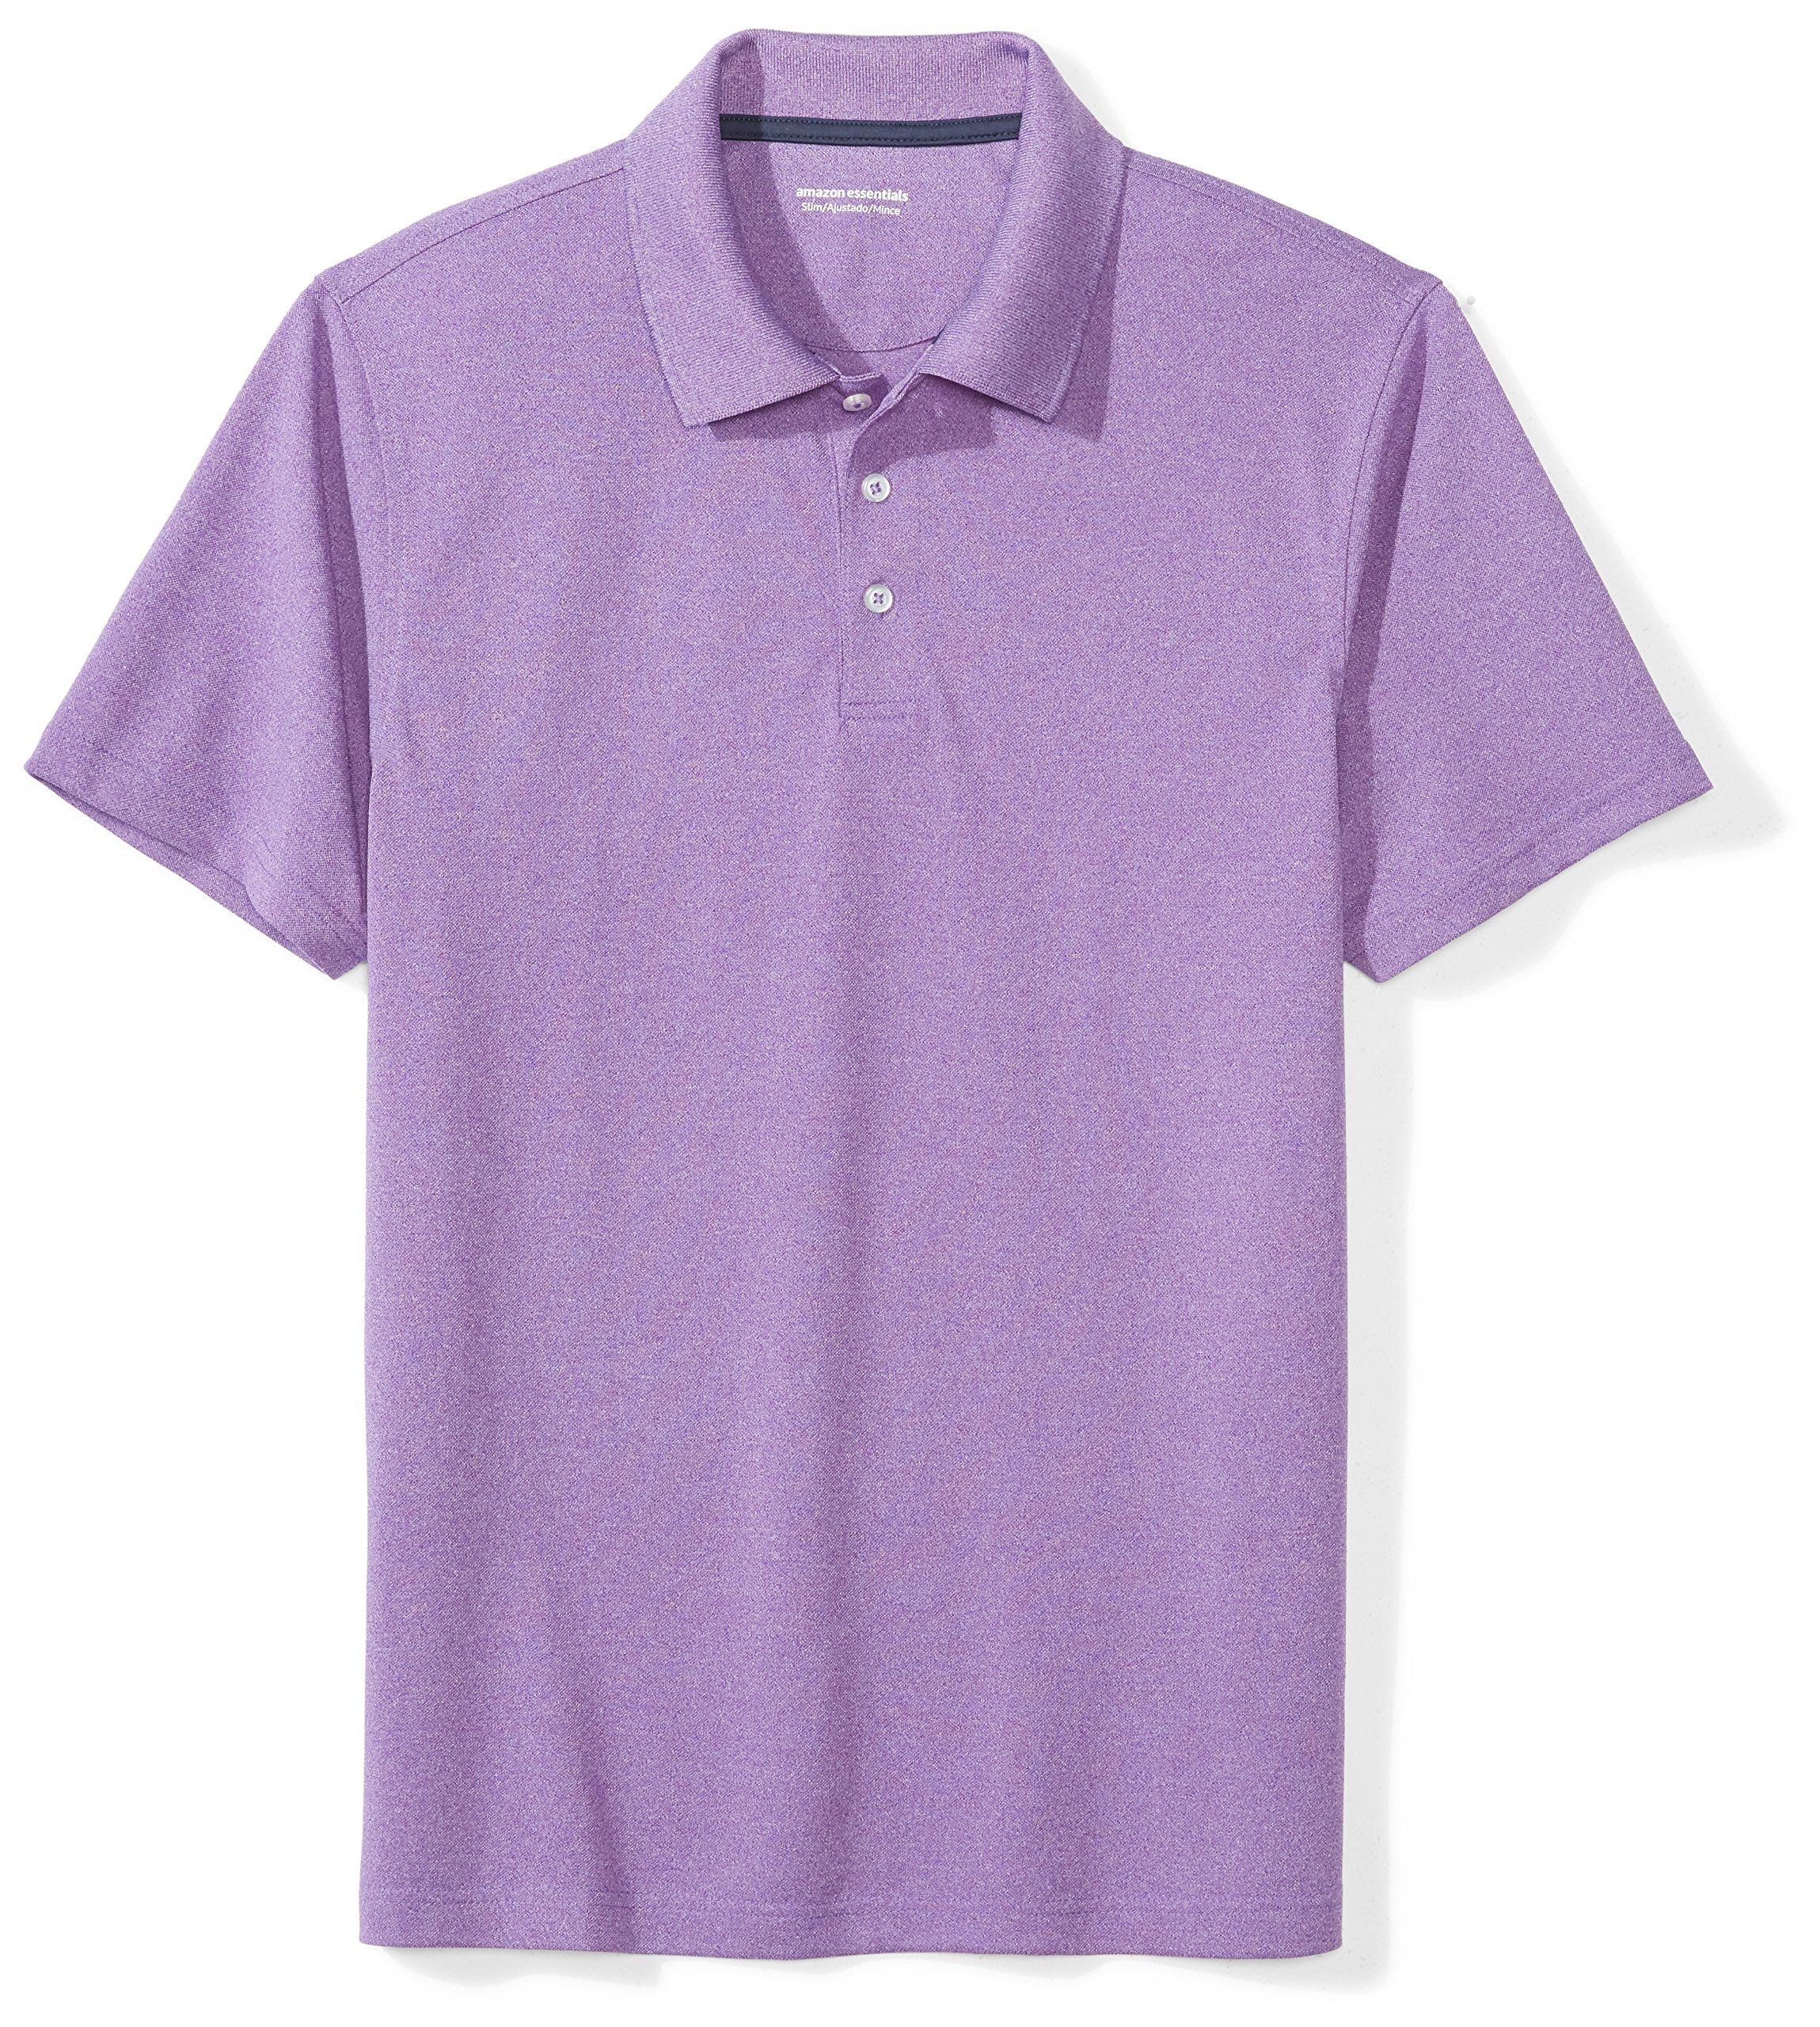 Amazon Essentials Men's Slim-Fit Quick-Dry Golf Polo Shirt, Purple Heather, Medium by Amazon Essentials